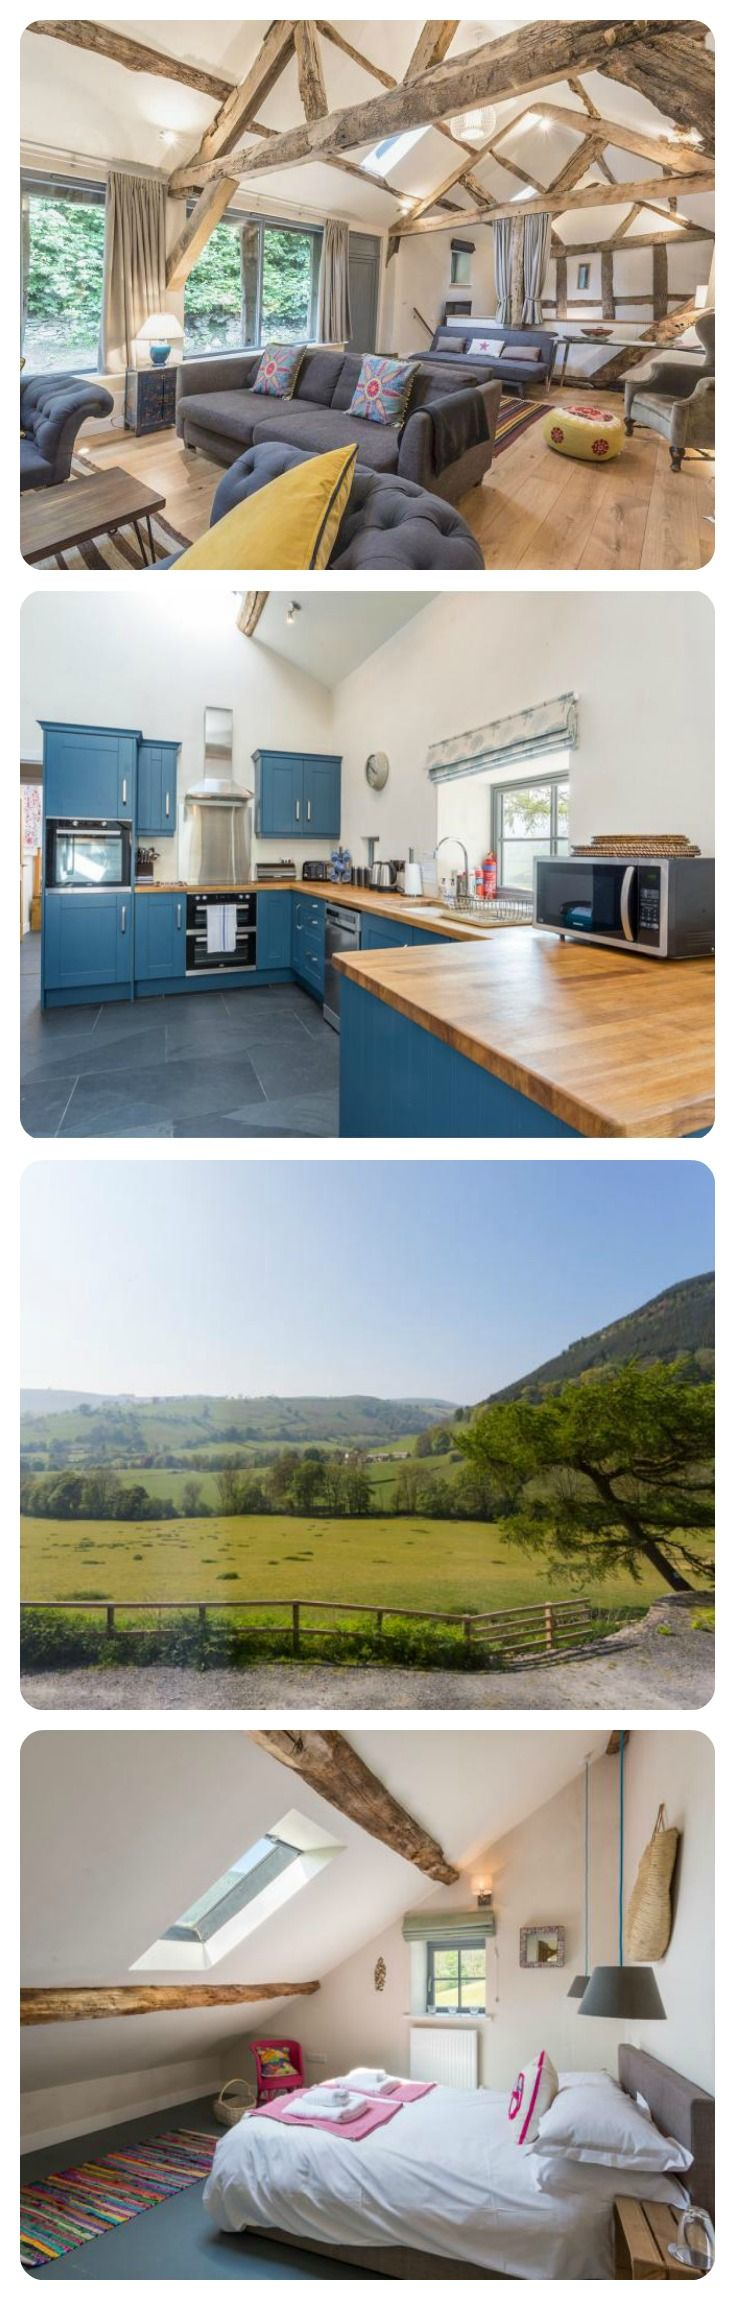 brecon hot fibre rent with stone tub riverside house mill real balcony mid cottages in cottage wifi rental yscir fire pretty wales to patio